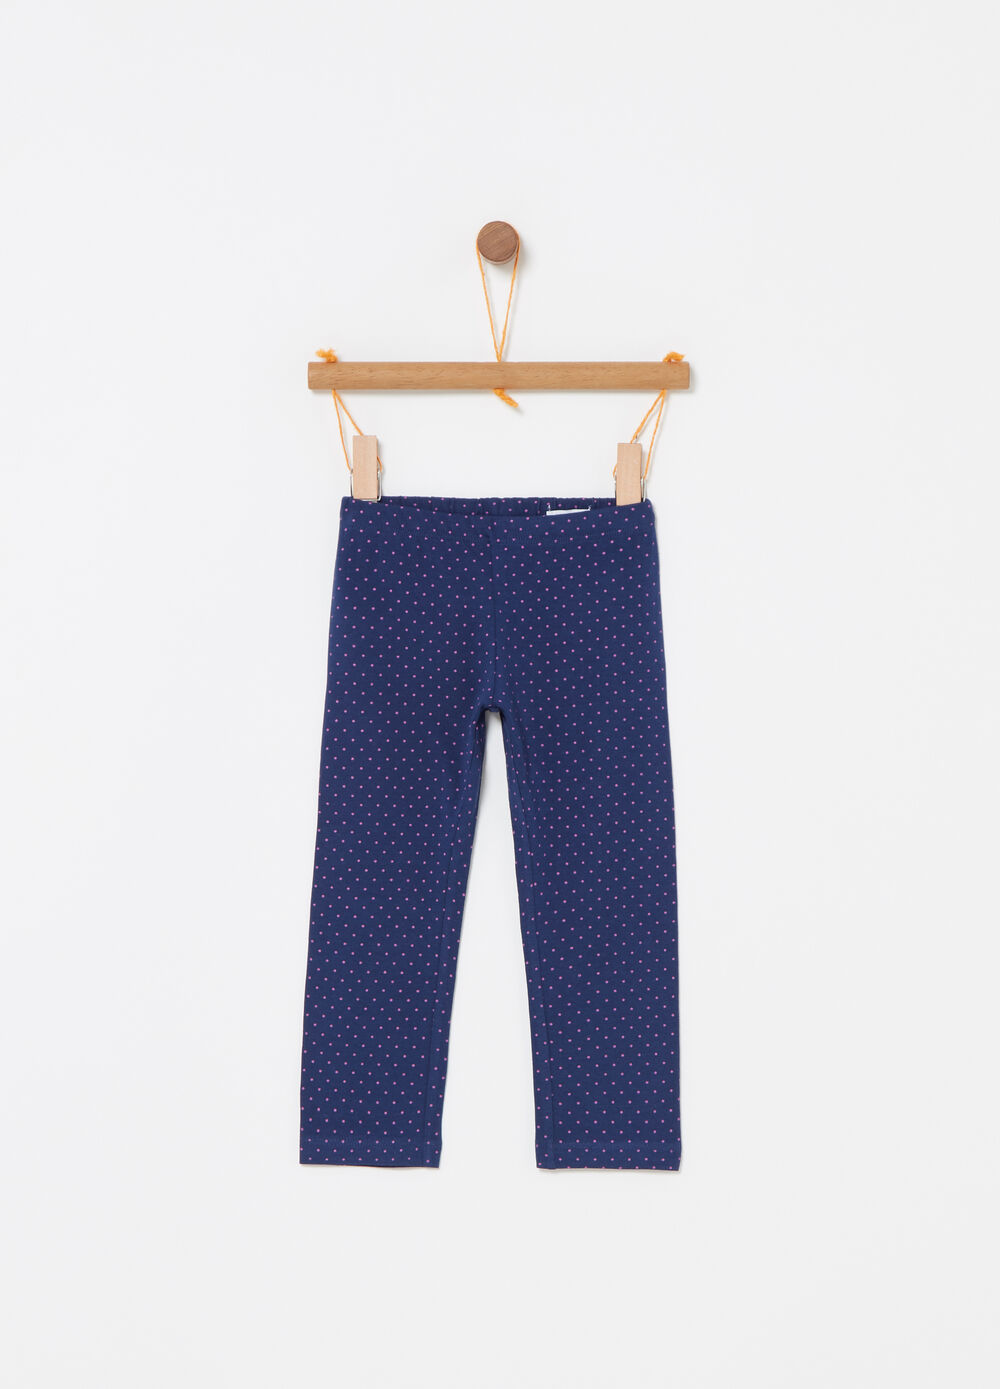 Three-quarter leggings with polka dots